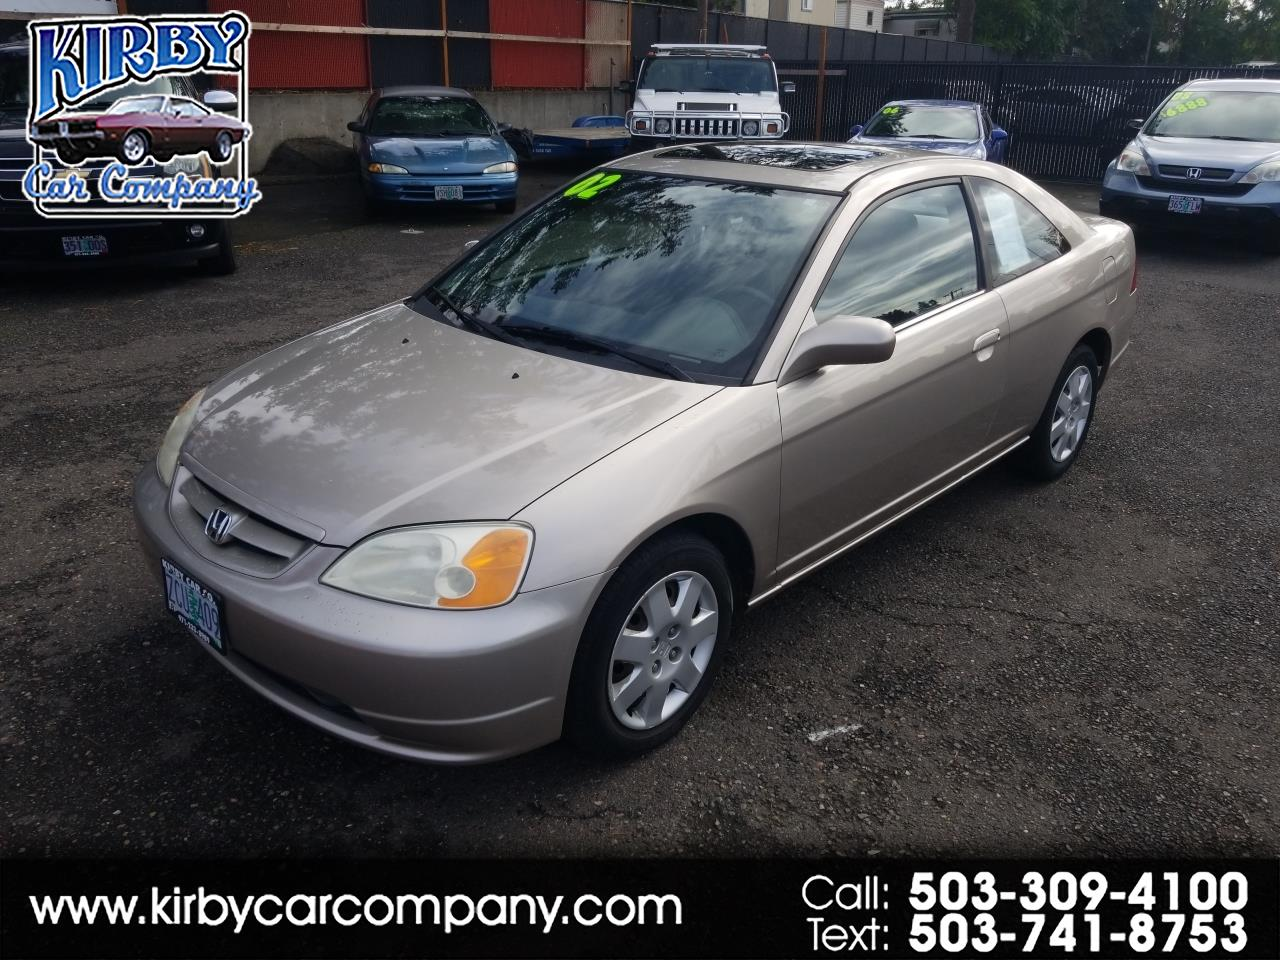 2002 Honda Civic EX Coupe  Auto!  Moon Roof!  Clean Title!  35mpg!